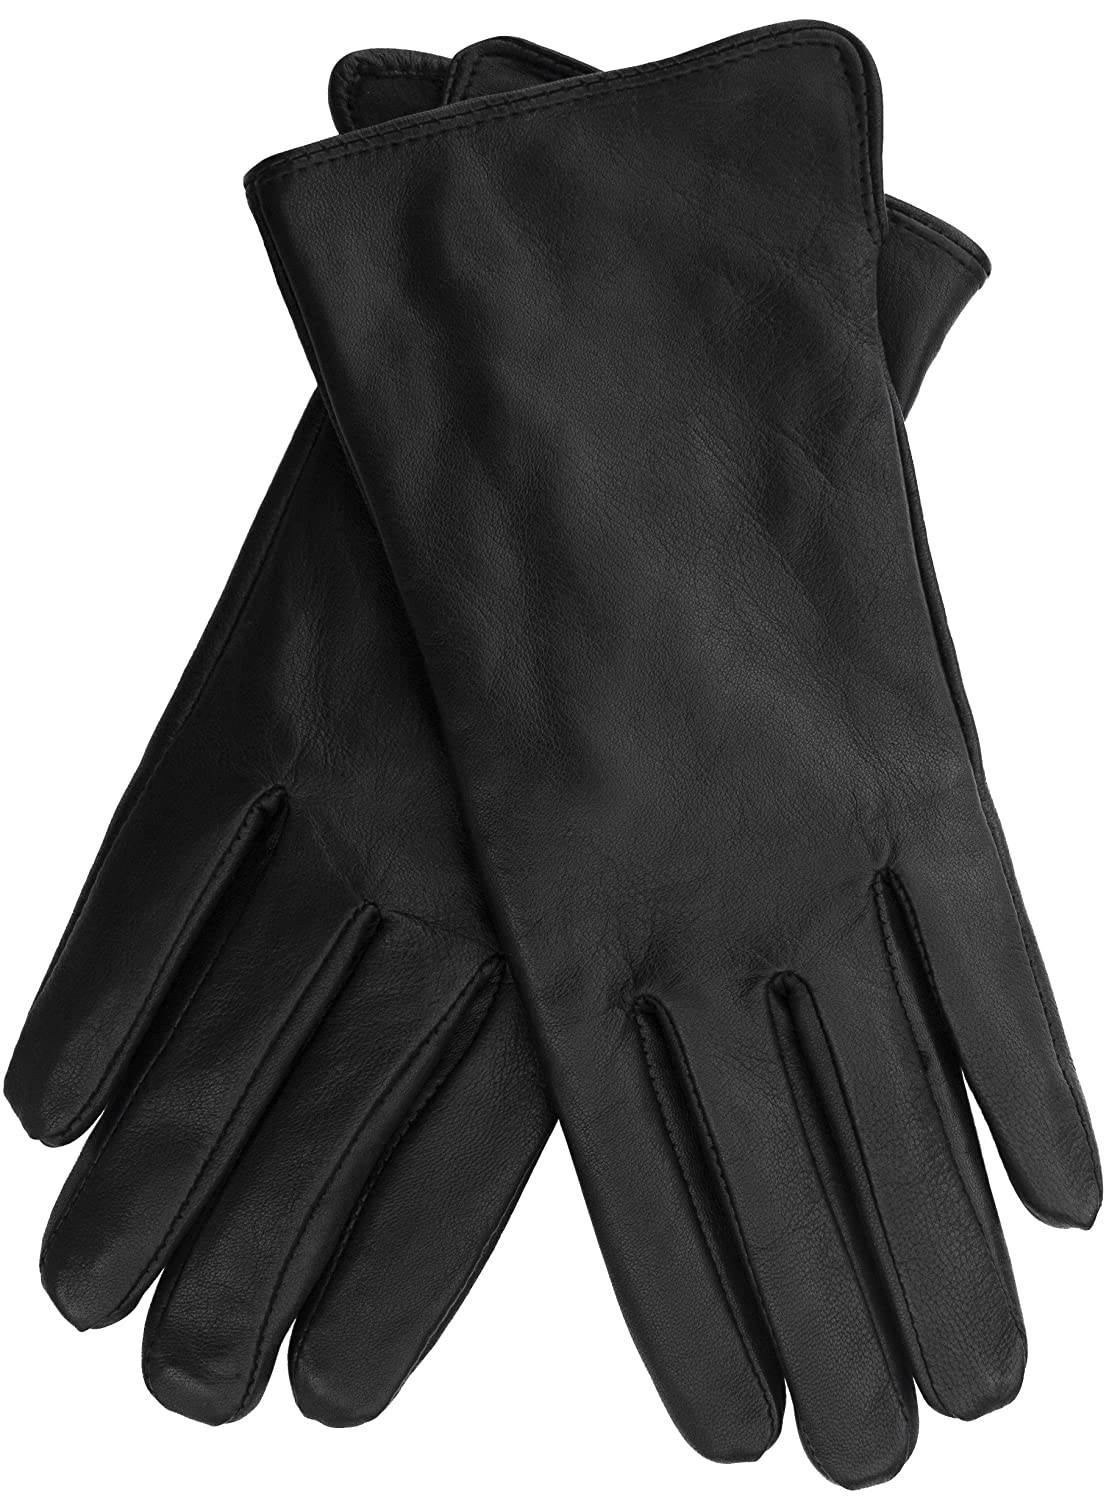 EEM leather gloves for ladies MARY manufactured from genuine leather